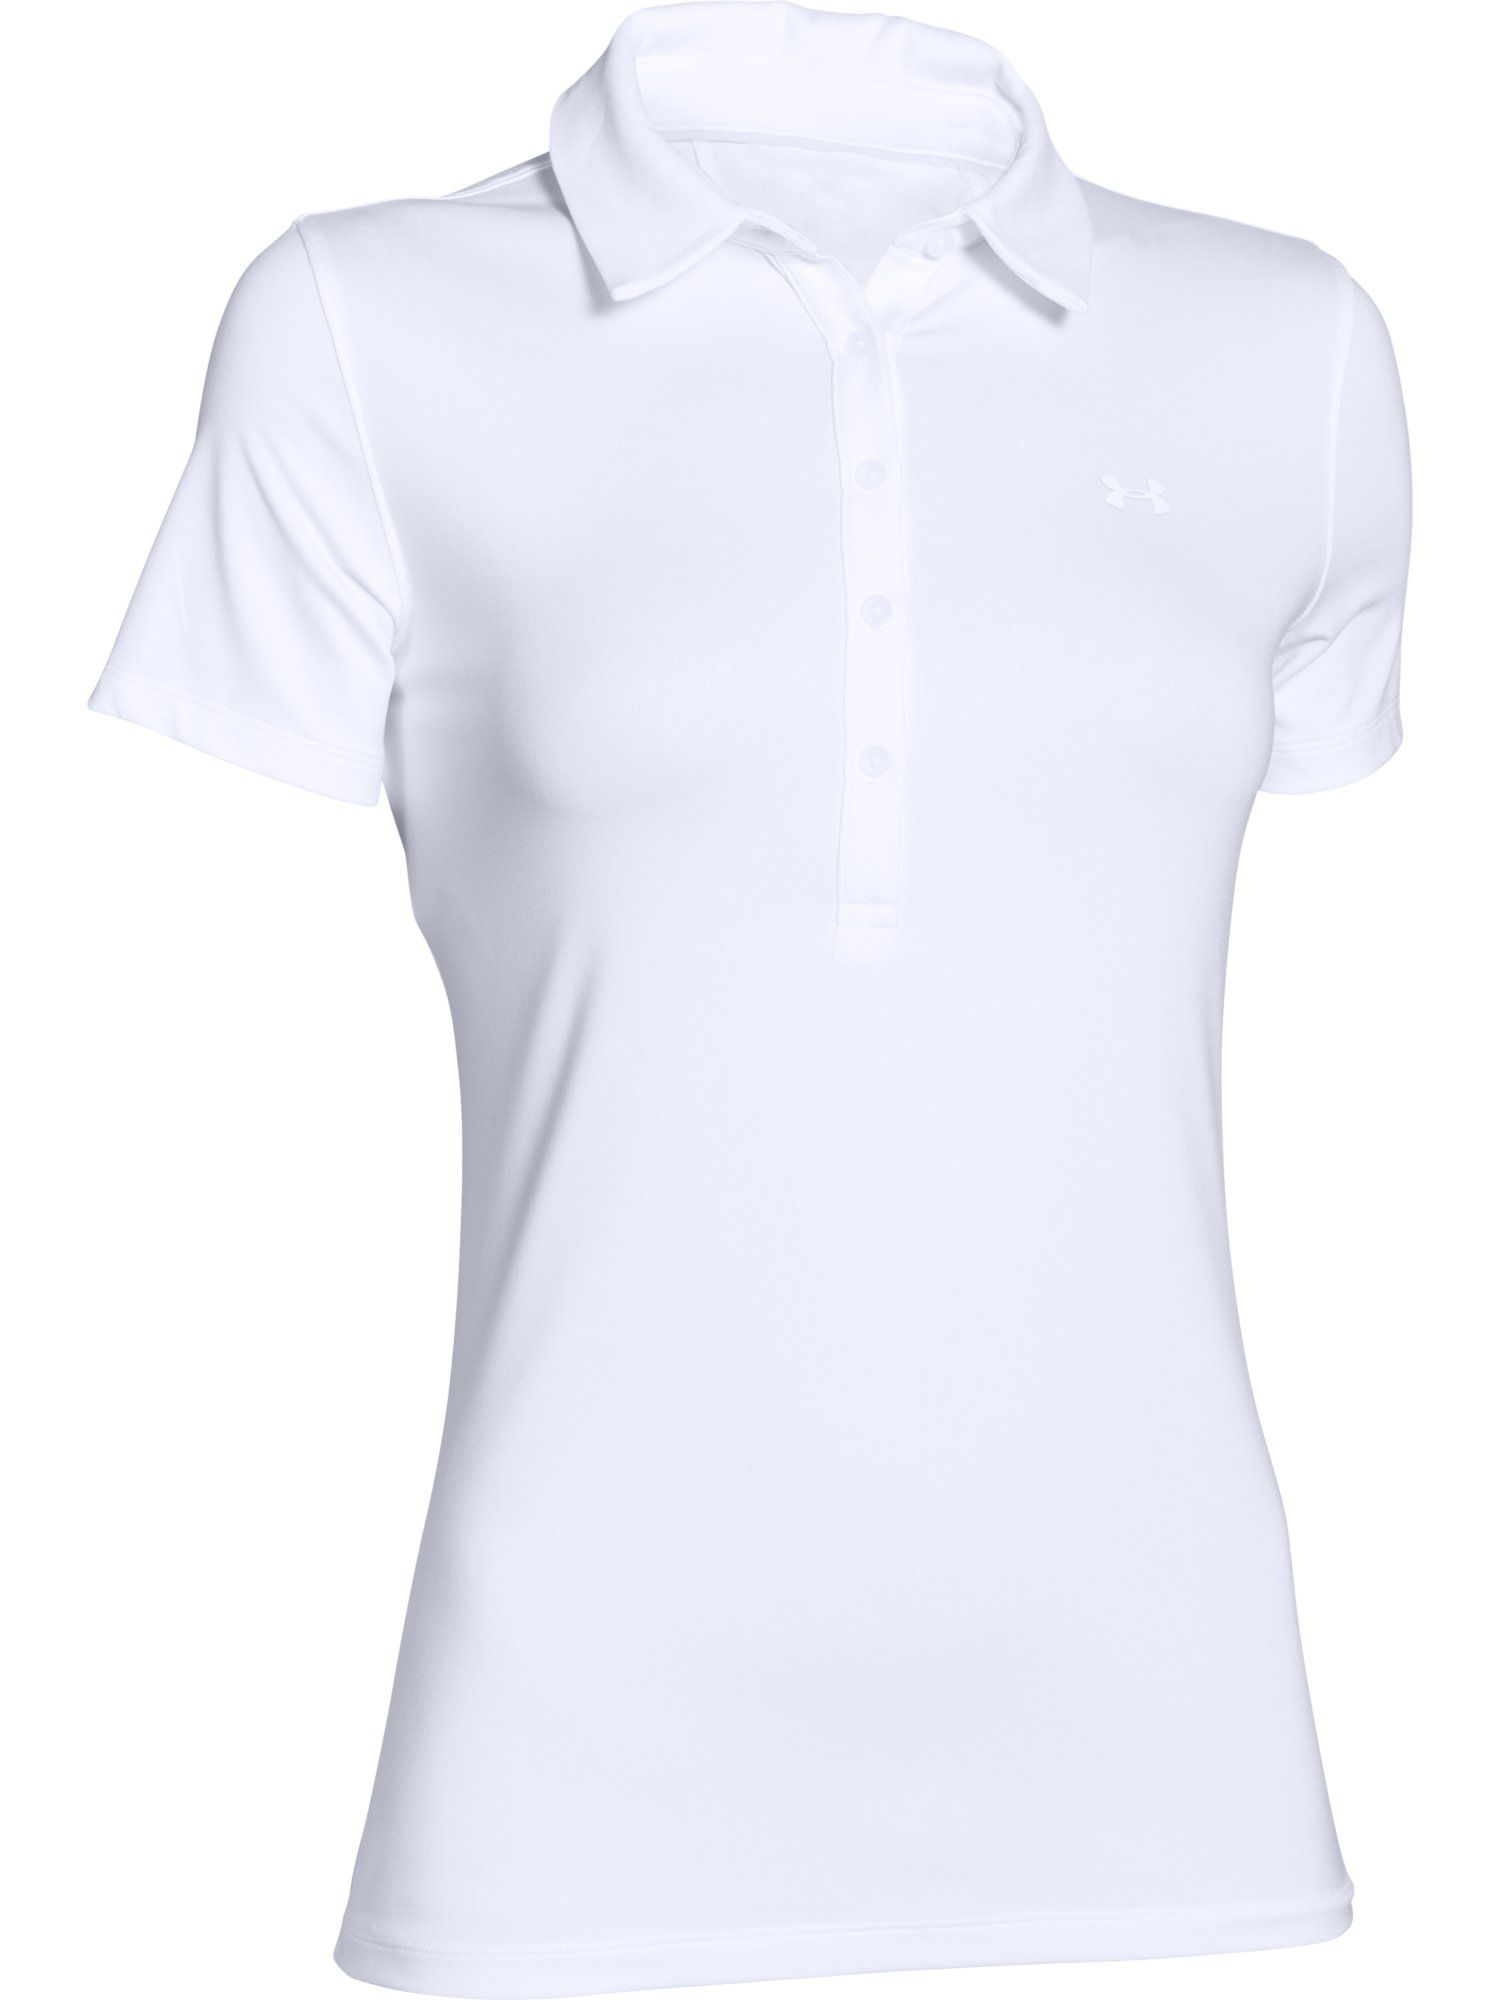 Under Armour Zinger Polo, White